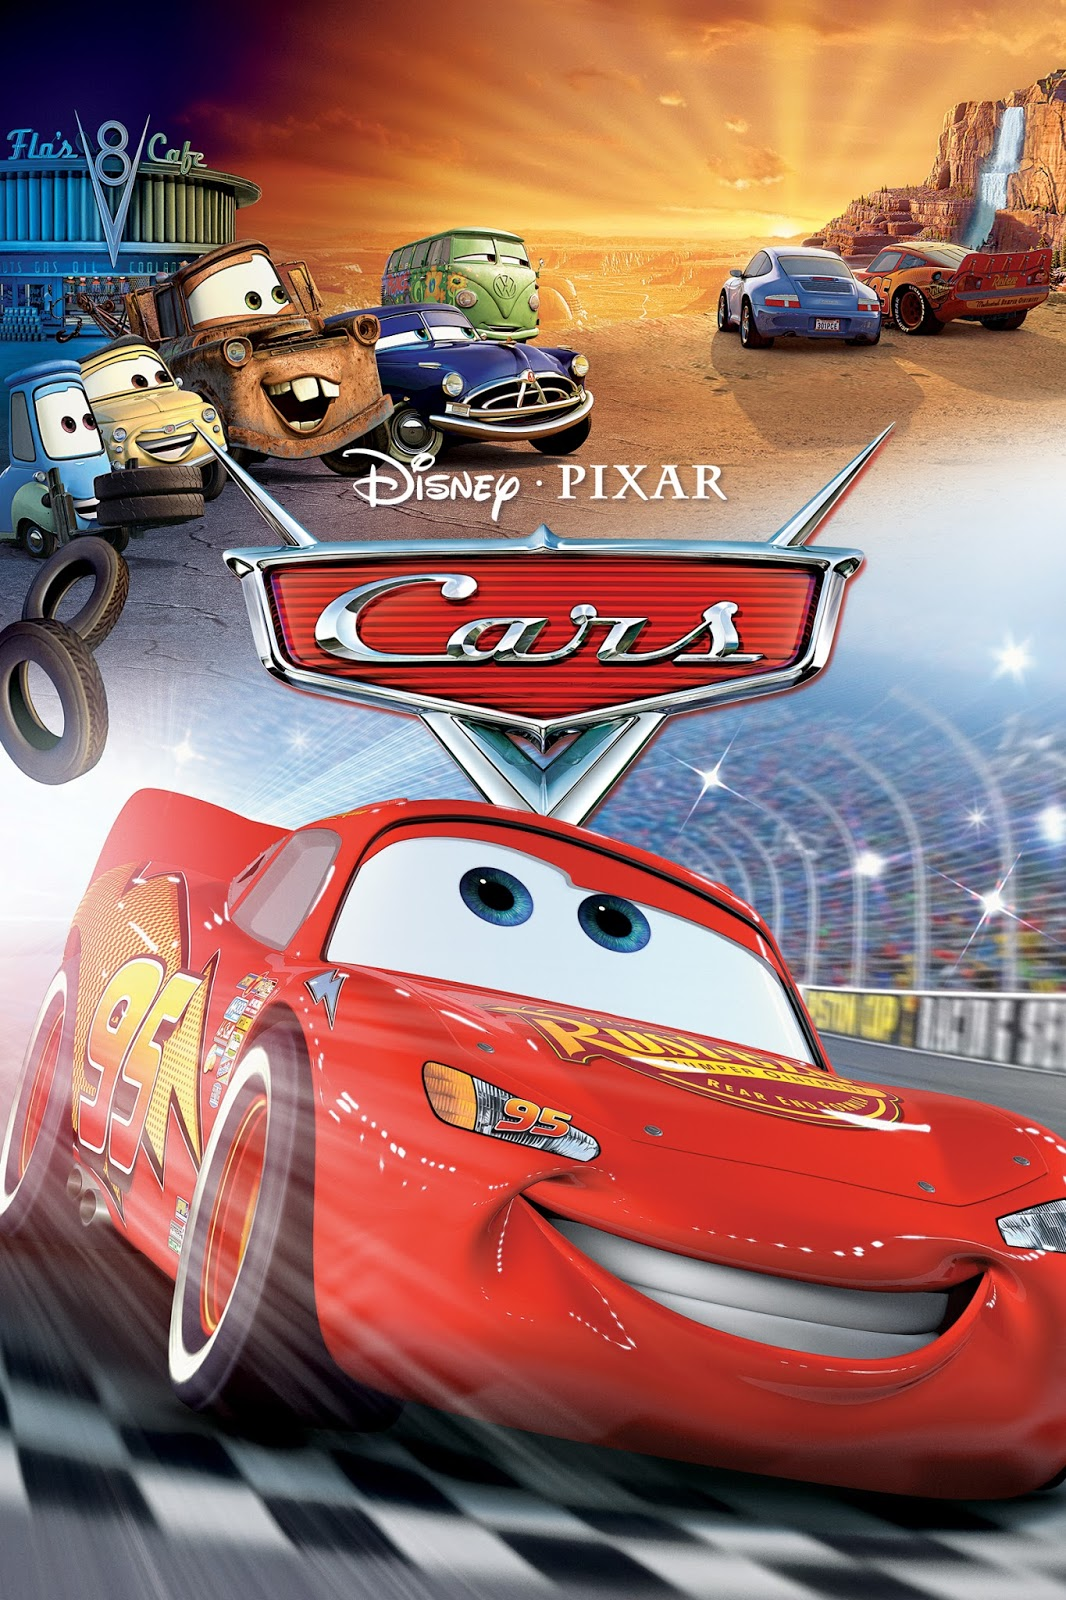 Game Disneys Cars Interactive Coloring Book Manufacturer Techno Source Release Date 2009 Genre Activity